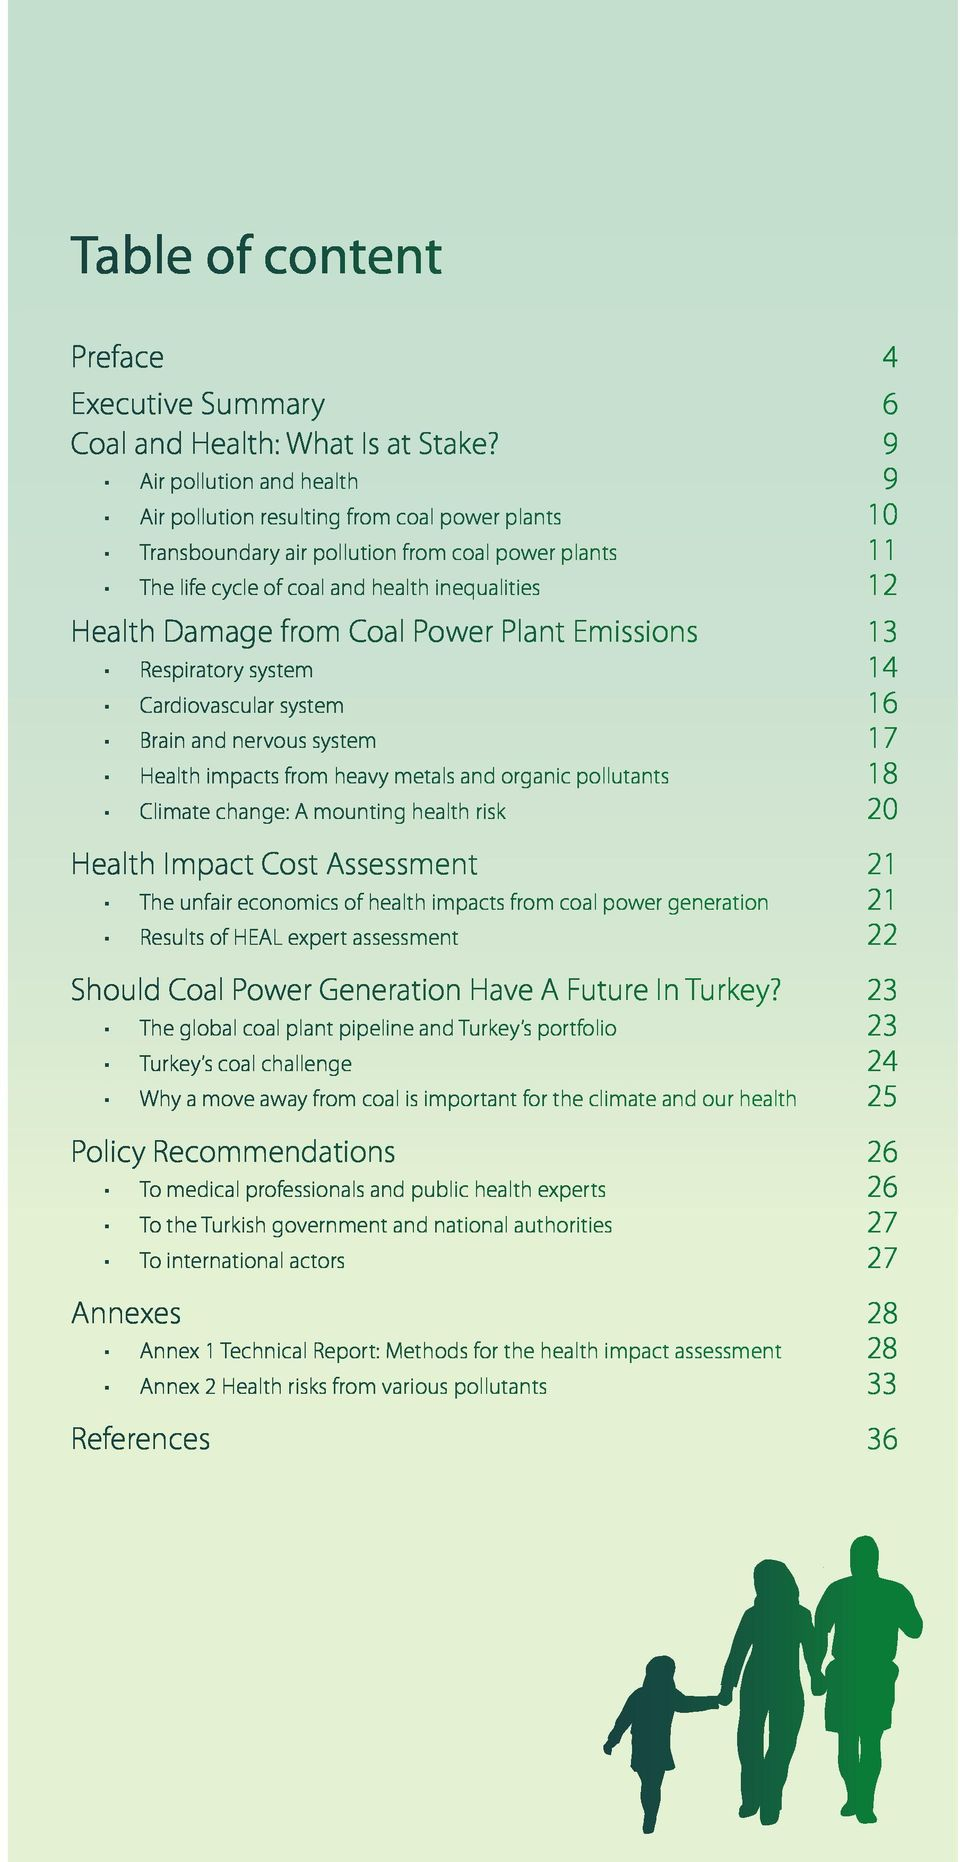 from Coal Power Plant Emissions 13 Respiratory system 14 Cardiovascular system 16 Brain and nervous system 17 Health impacts from heavy metals and organic pollutants 18 Climate change: A mounting